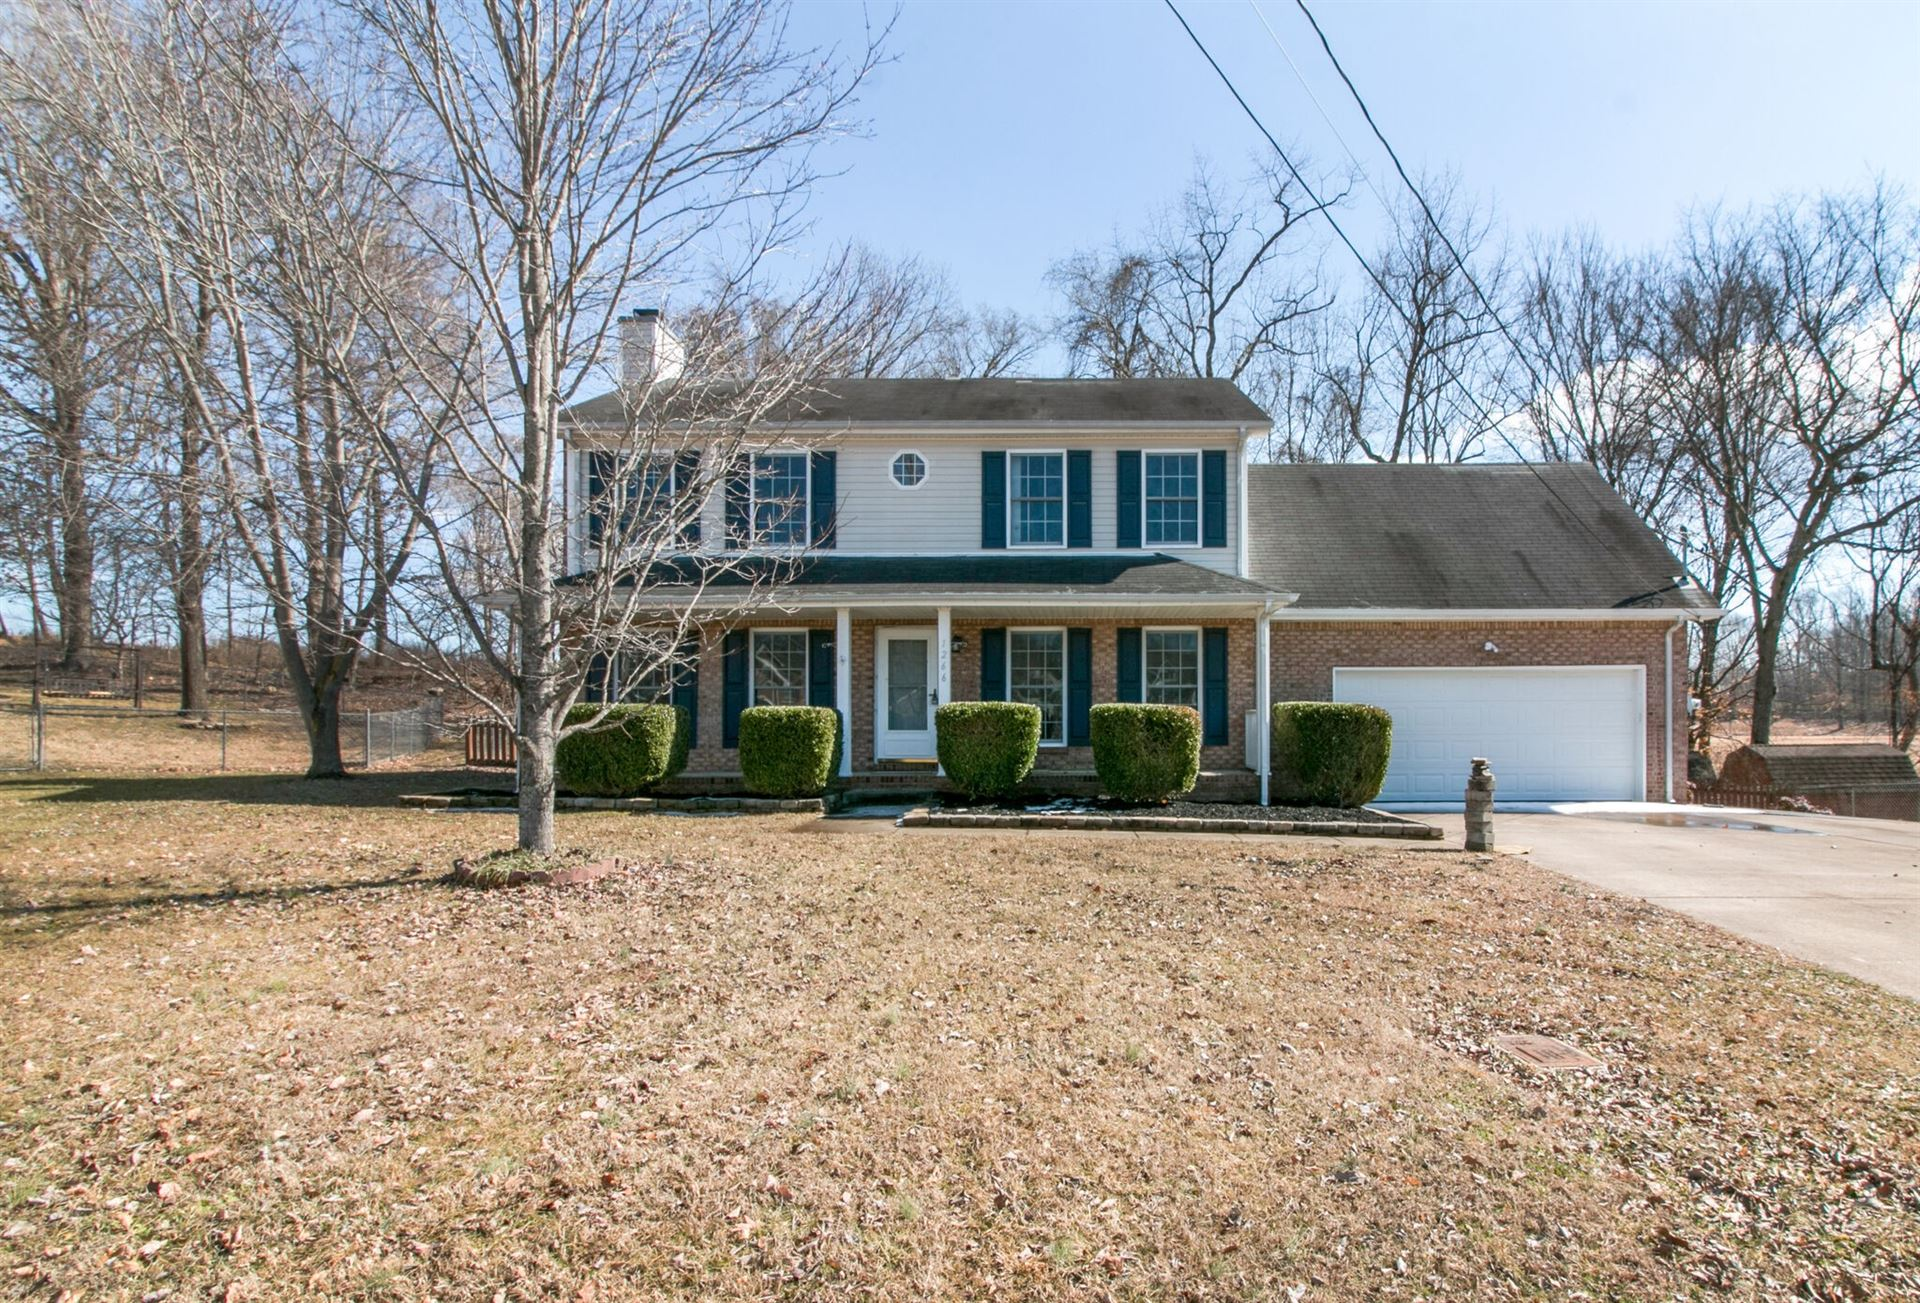 1266 Carnation Ct, Clarksville, TN 37042 - MLS#: 2231372